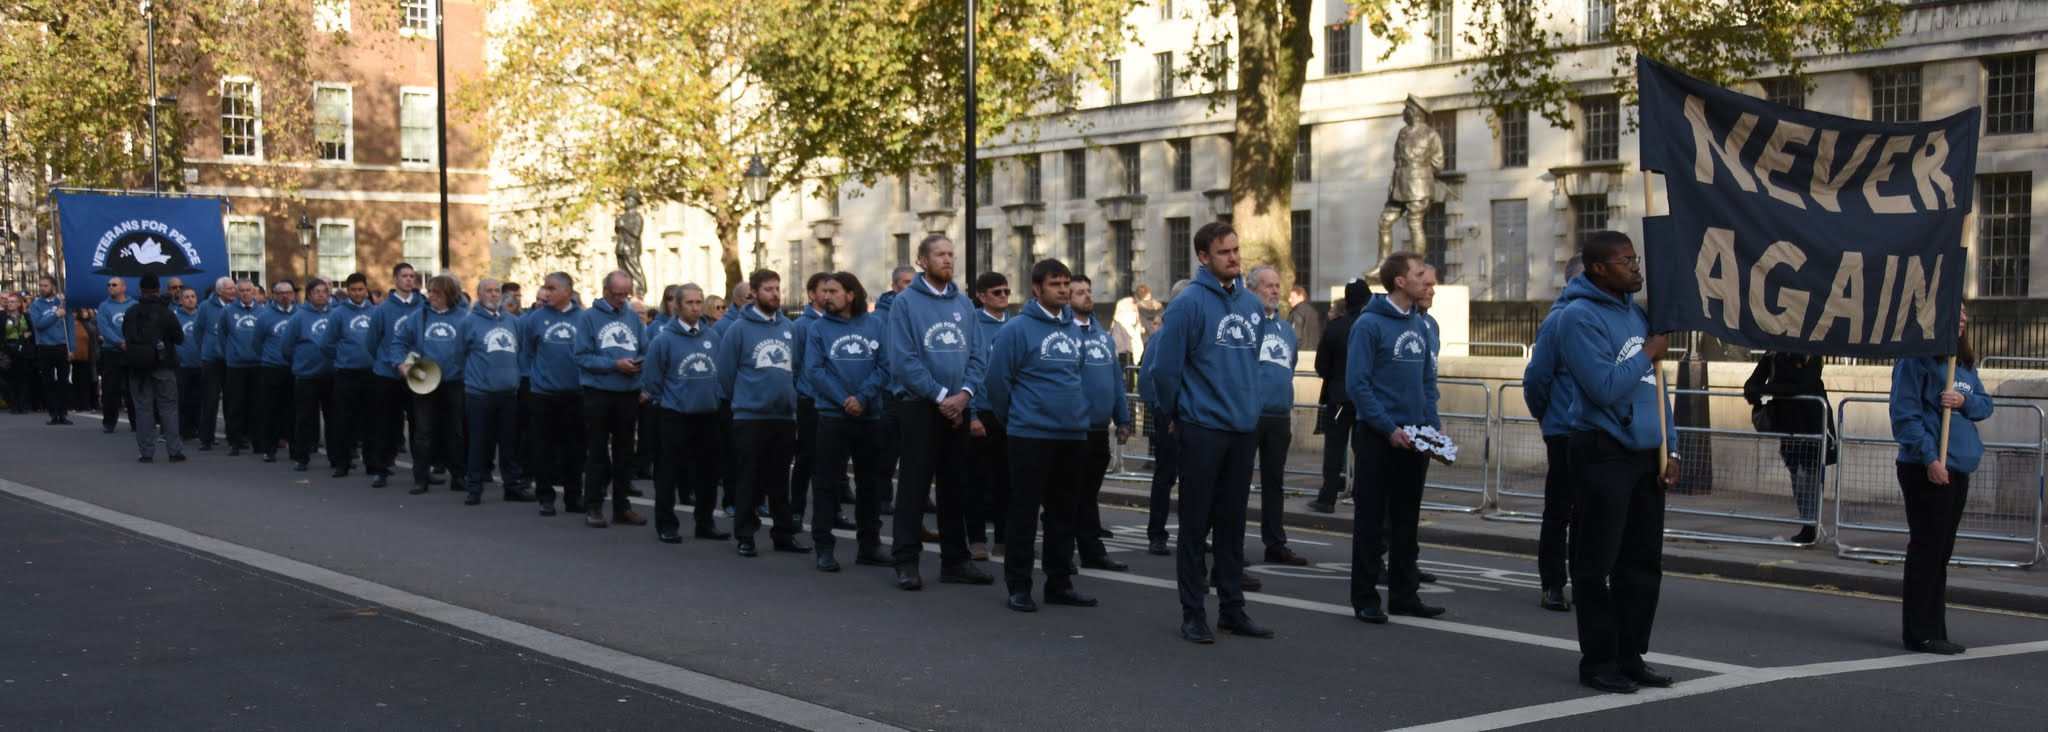 ANNUAL GATHERING 2019: THE CENOTAPH post image